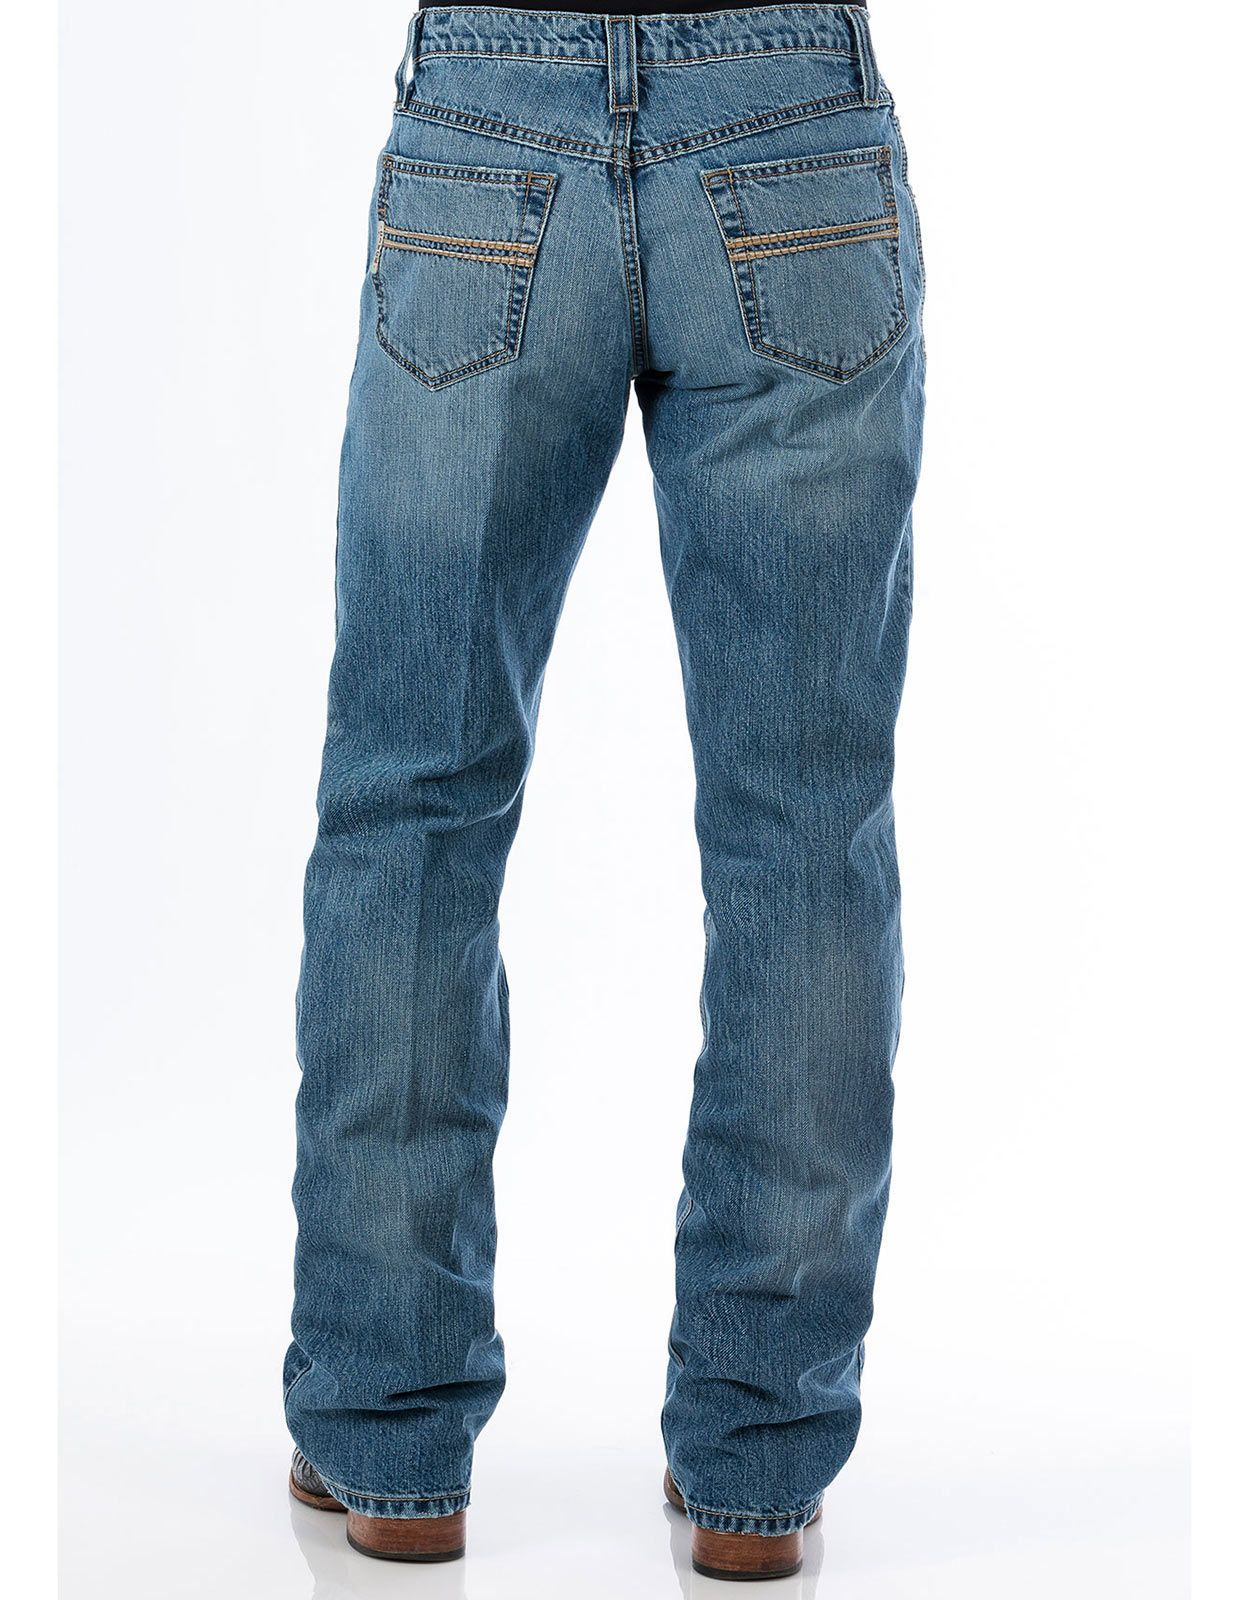 Cinch Men's Carter 2.0 Mid Rise Relaxed Fit Boot Leg Jeans - Light Stonewash